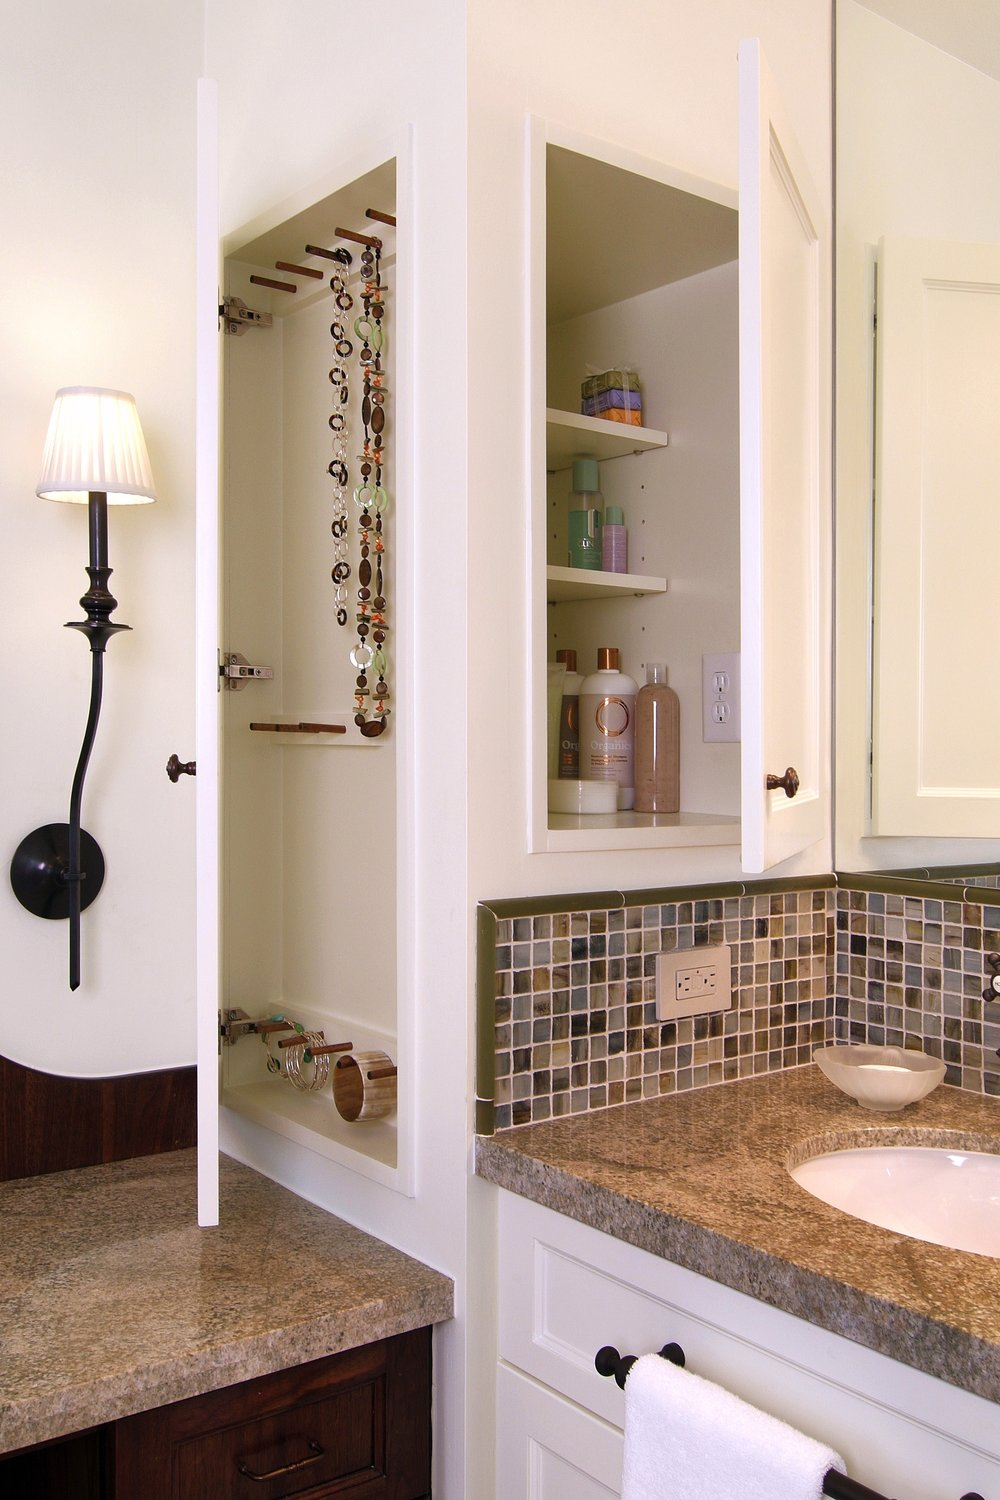 Luxury Electrical outlet inside medicine cabinet in bathroom